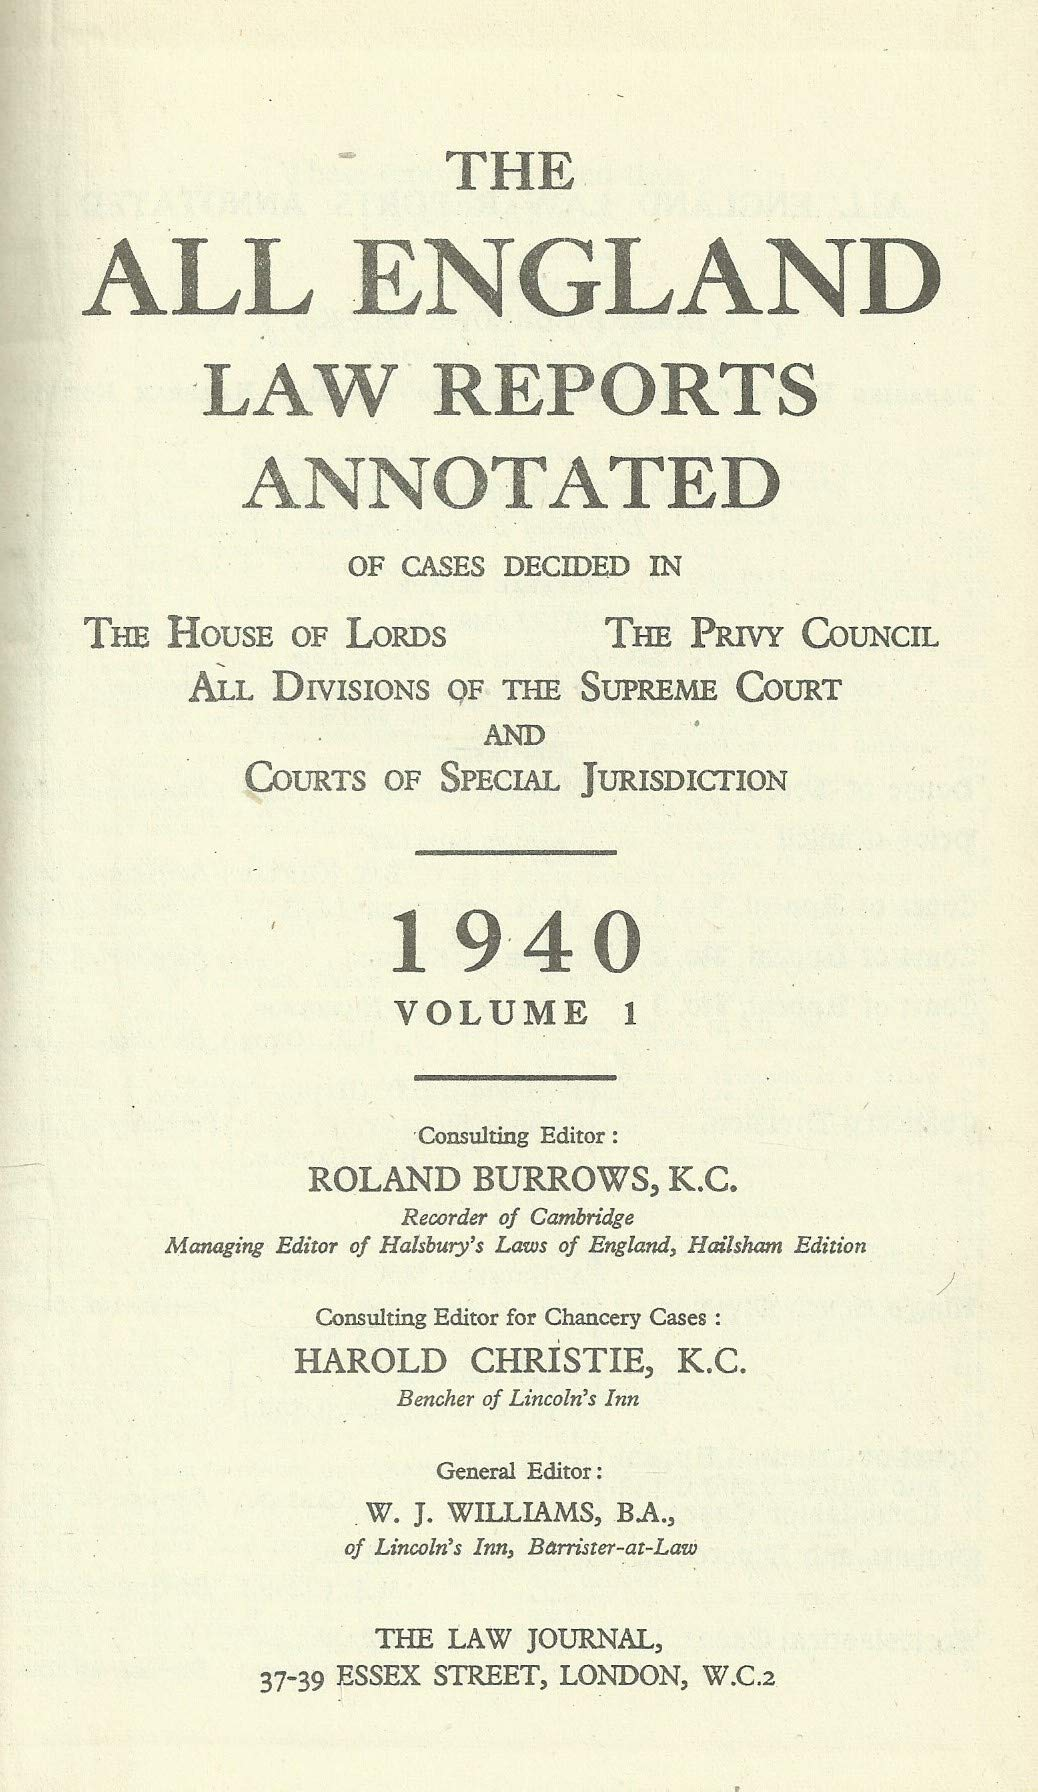 The All England Law Reports 1940, Volume 1